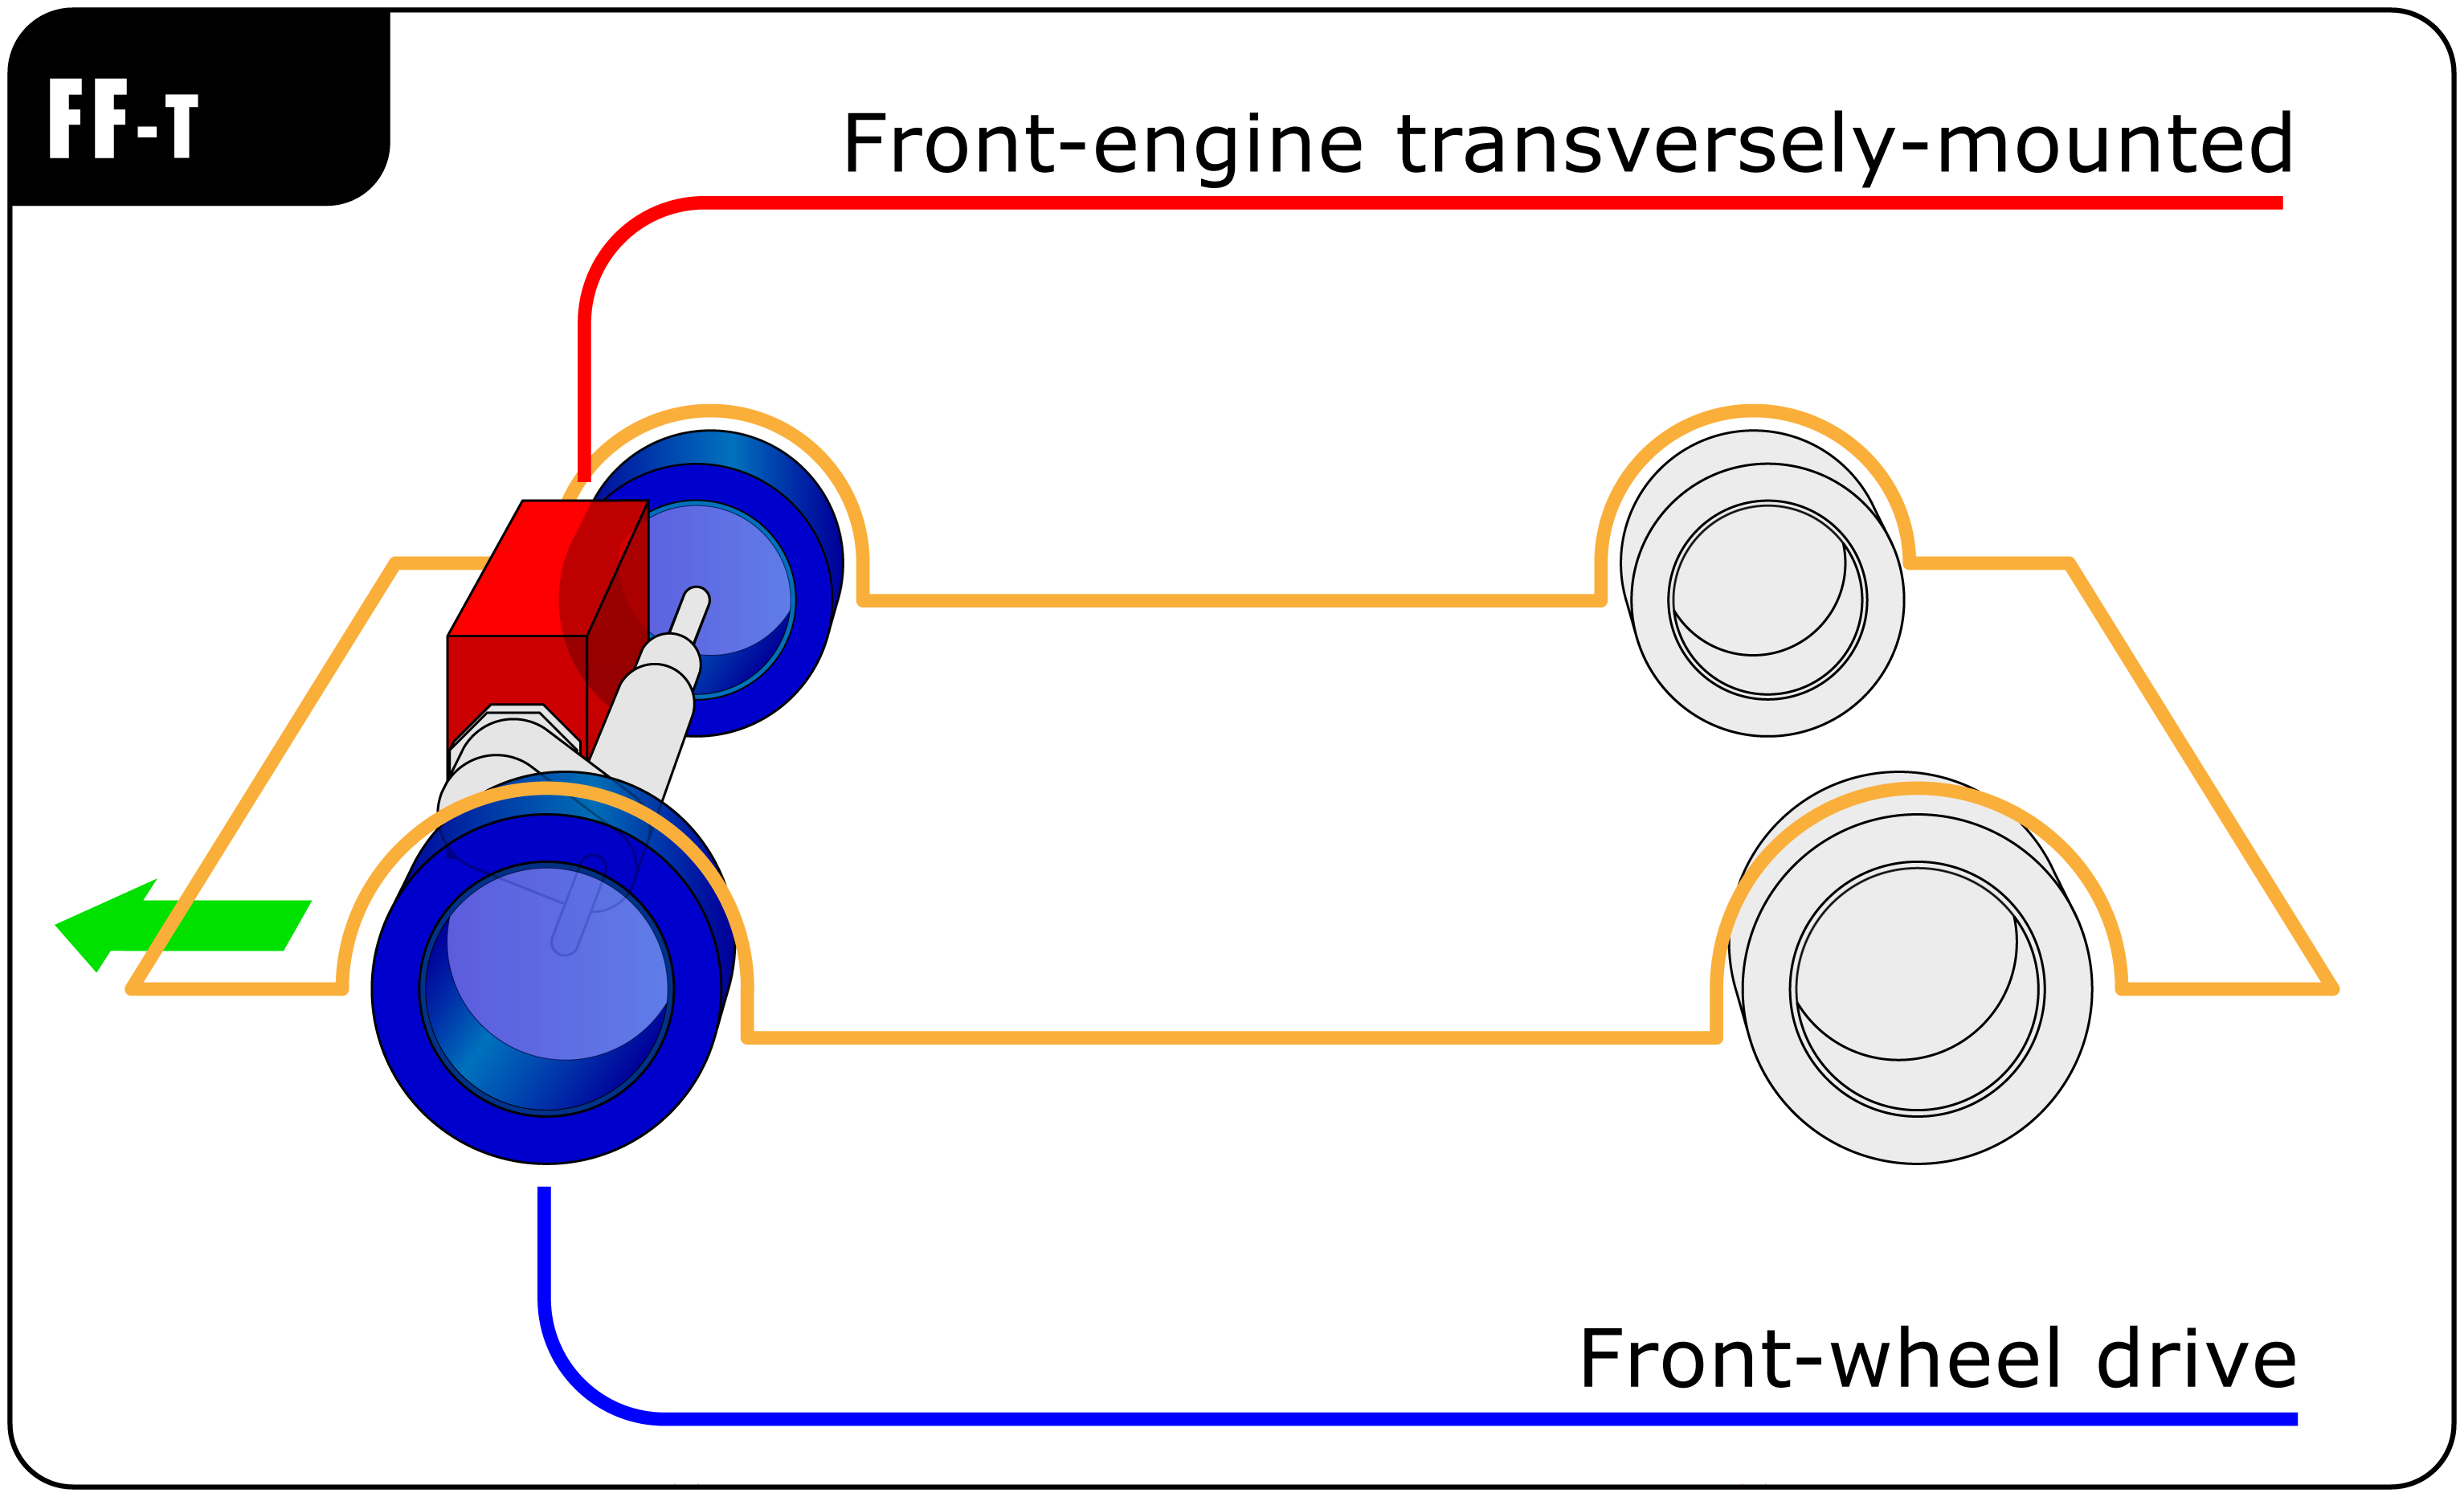 front-engine, front-wheel-drive layout